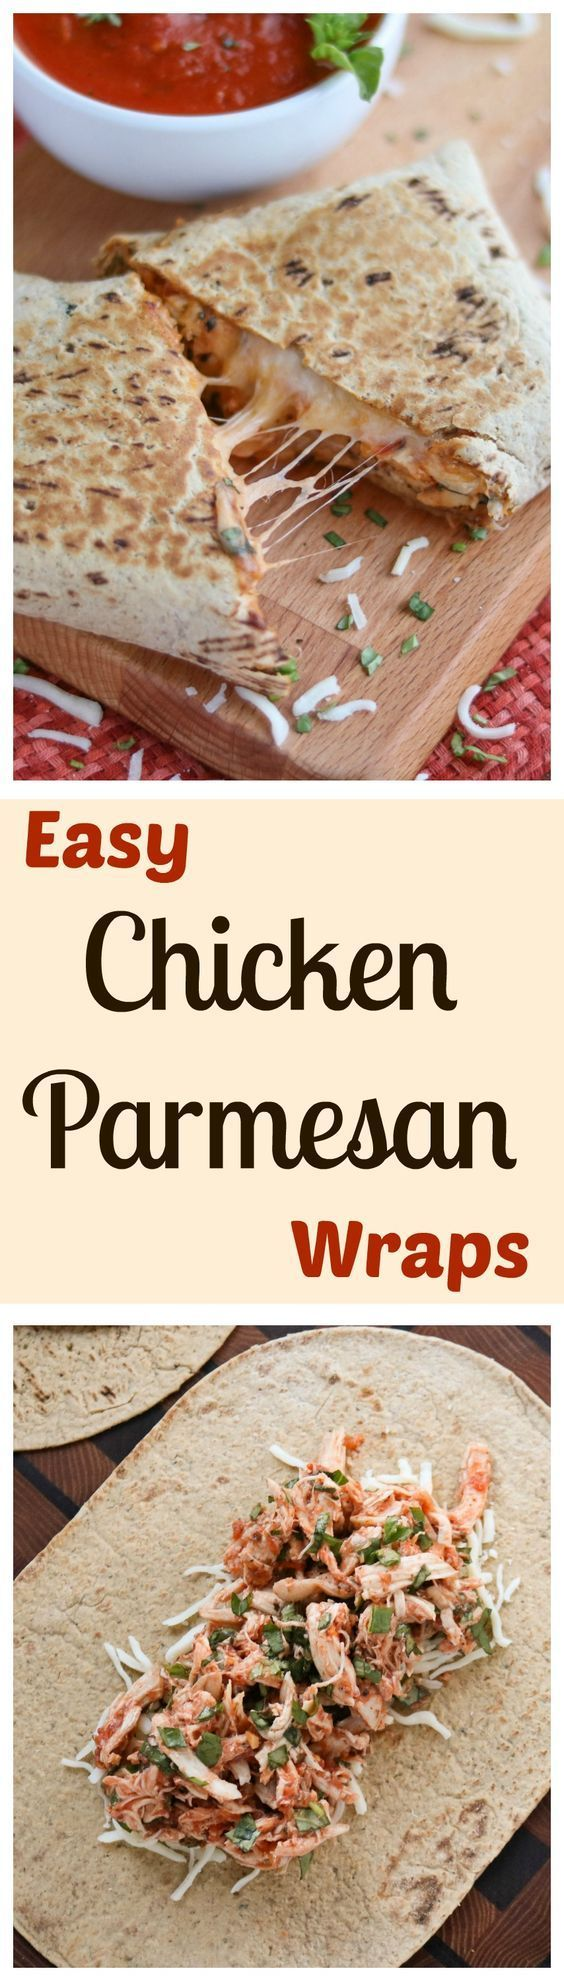 Easy Chicken Parmesan Wraps